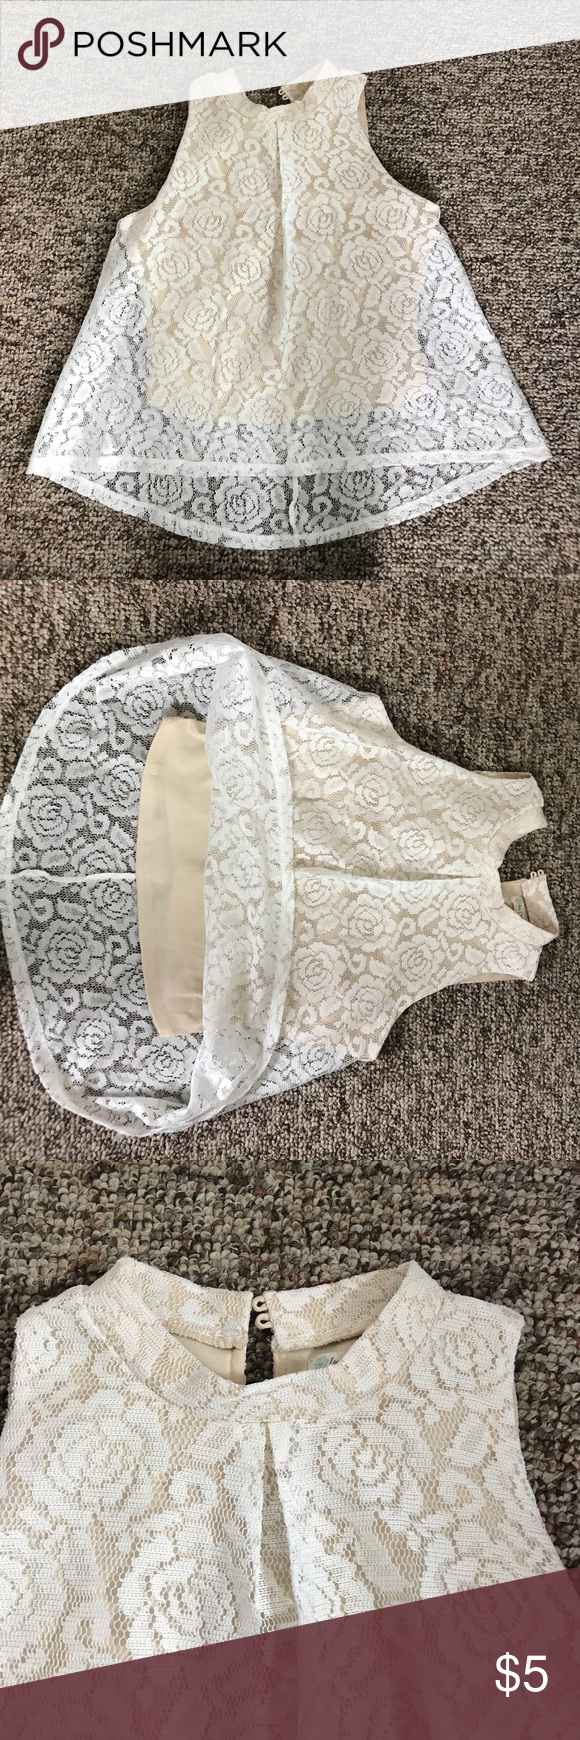 White flower patterned lace tank top with collar A white laces tank top with a cream liner. The white lace is a flower pattern and goes down farther than the cream inside liner does. The tank top is love, fire and is a size S Love, Fire Tops Tank Tops